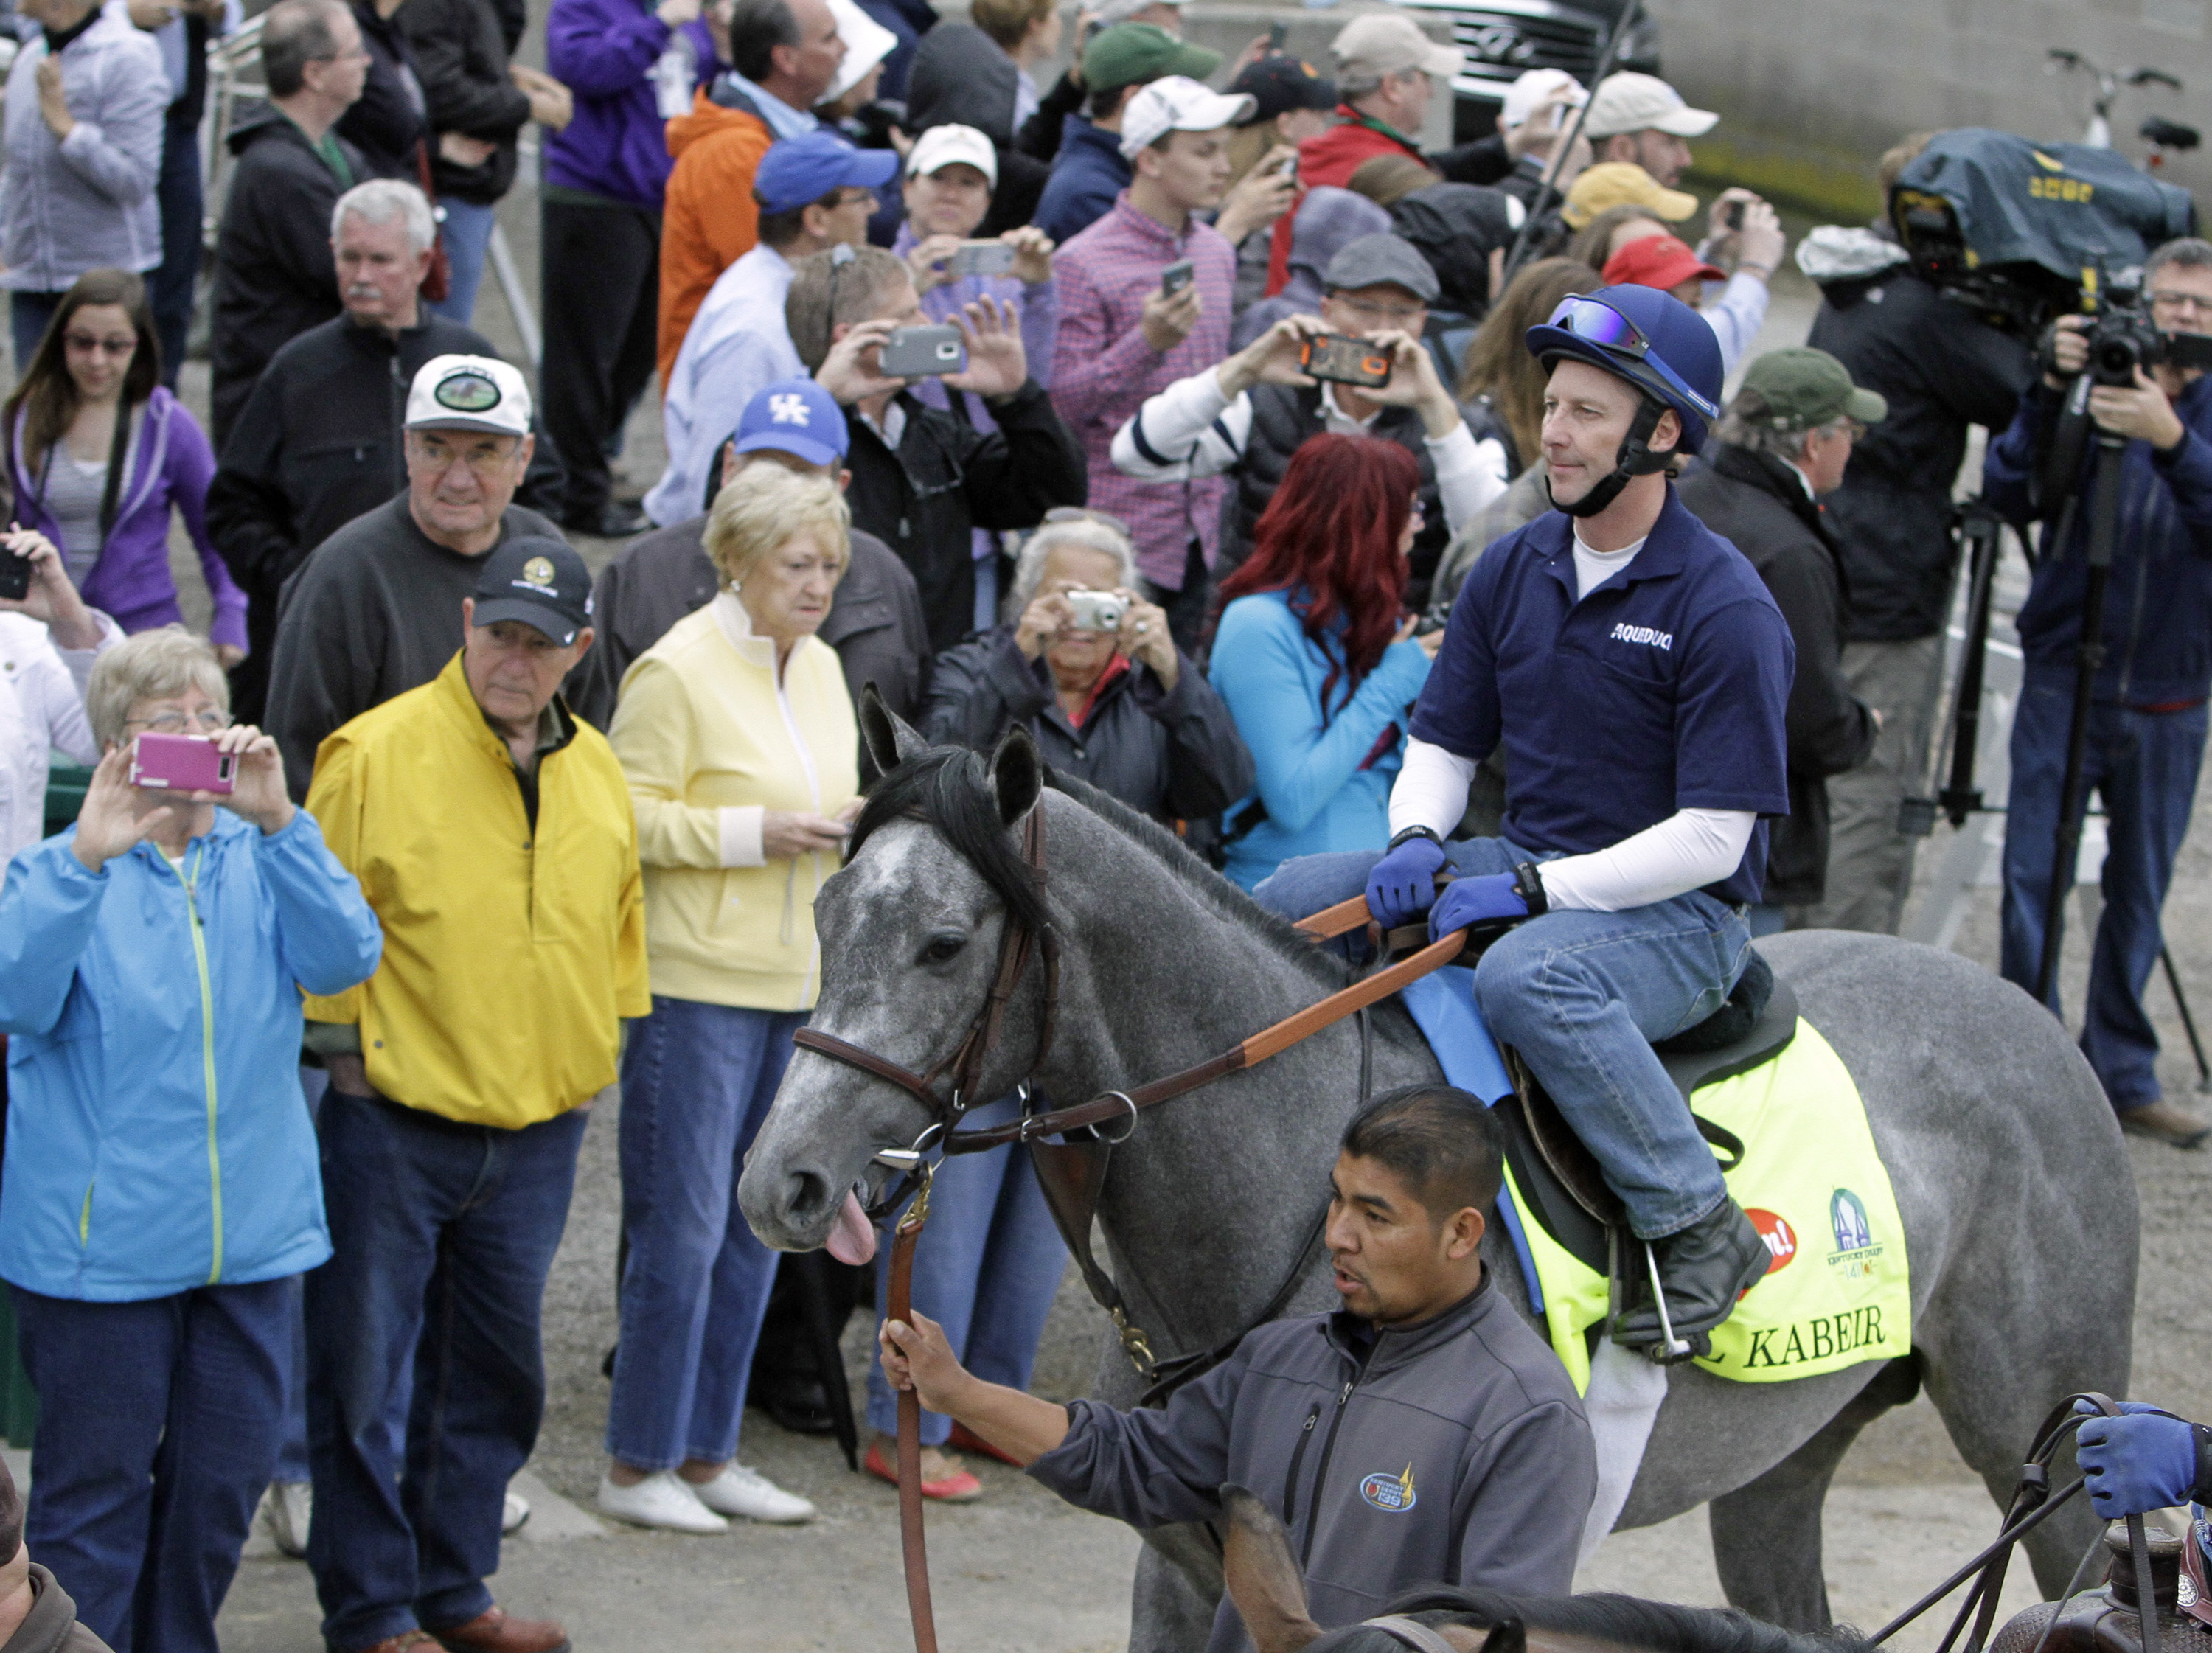 Kentucky Derby entrant El Kabeir, with exercise rider Simon Harris in the saddle, is led to the track through a crowd outside Barn 33 at Churchill Downs in Louisville, Ky., Thursday, April 30, 2015.  (AP Photo/Garry Jones)